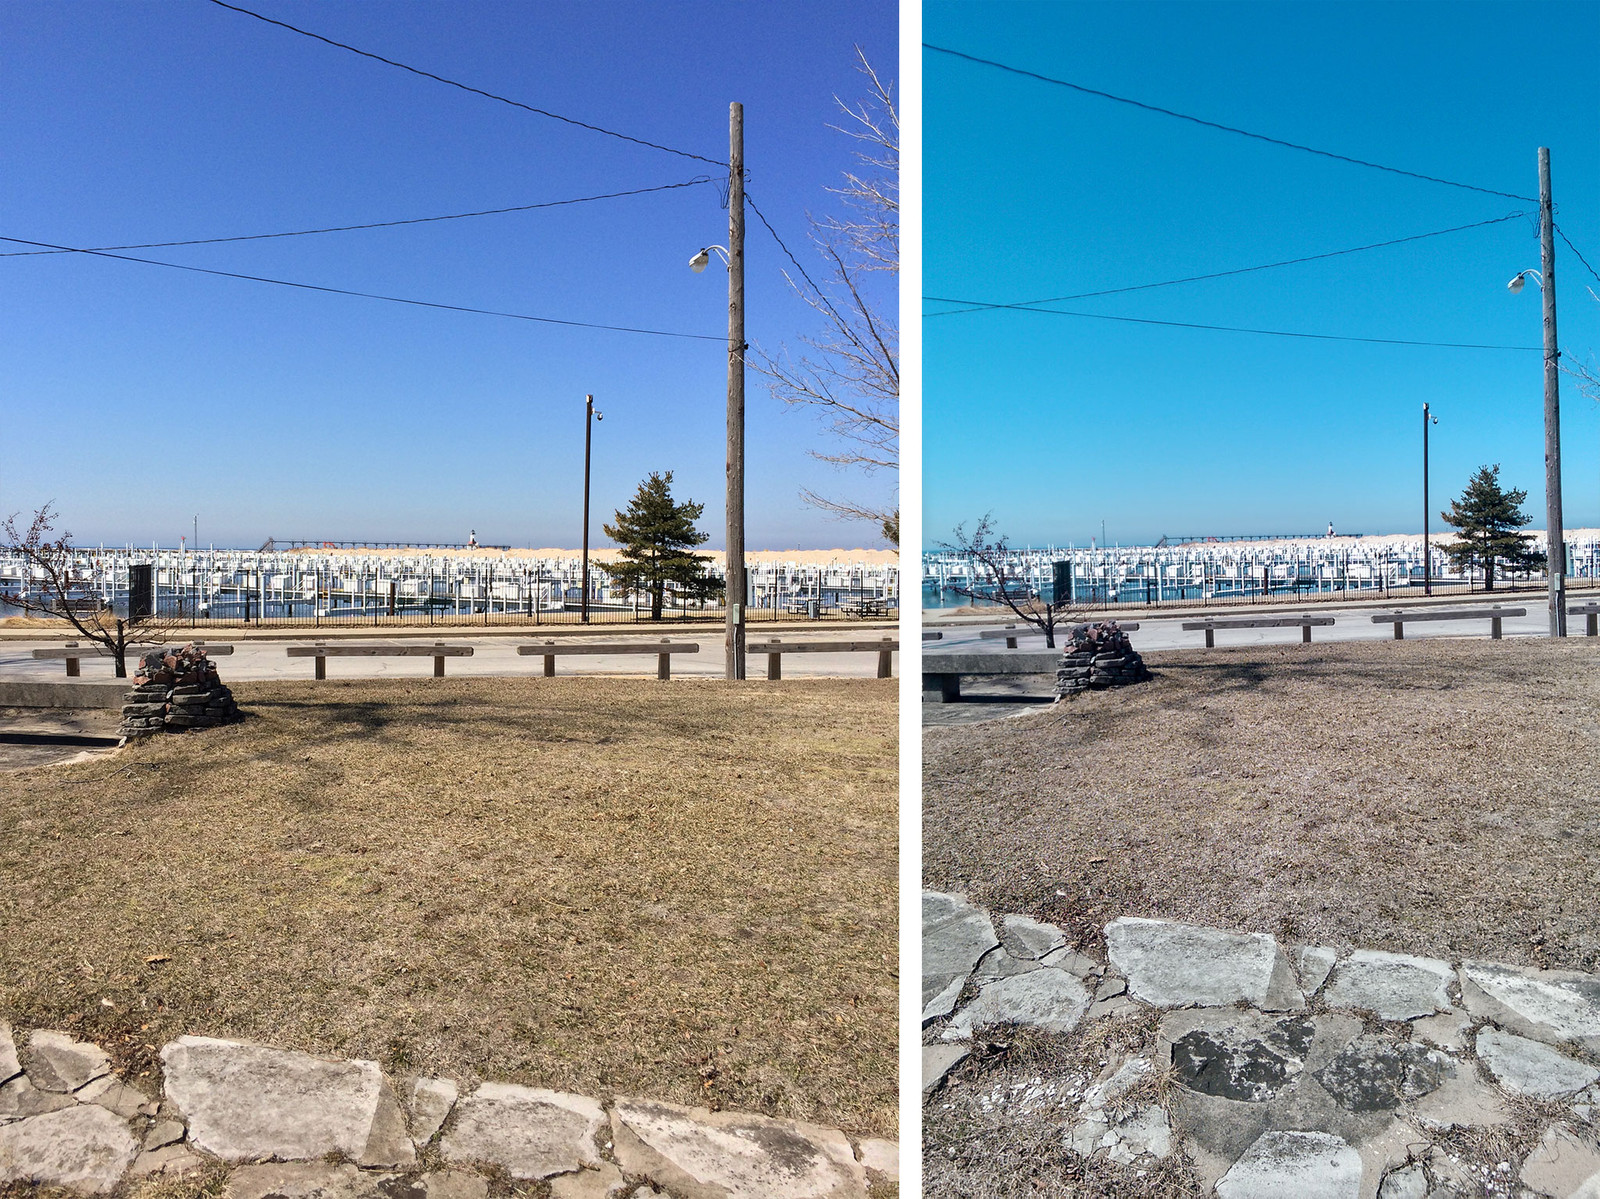 HTC One M8 vs. iPhone 5s: HDR